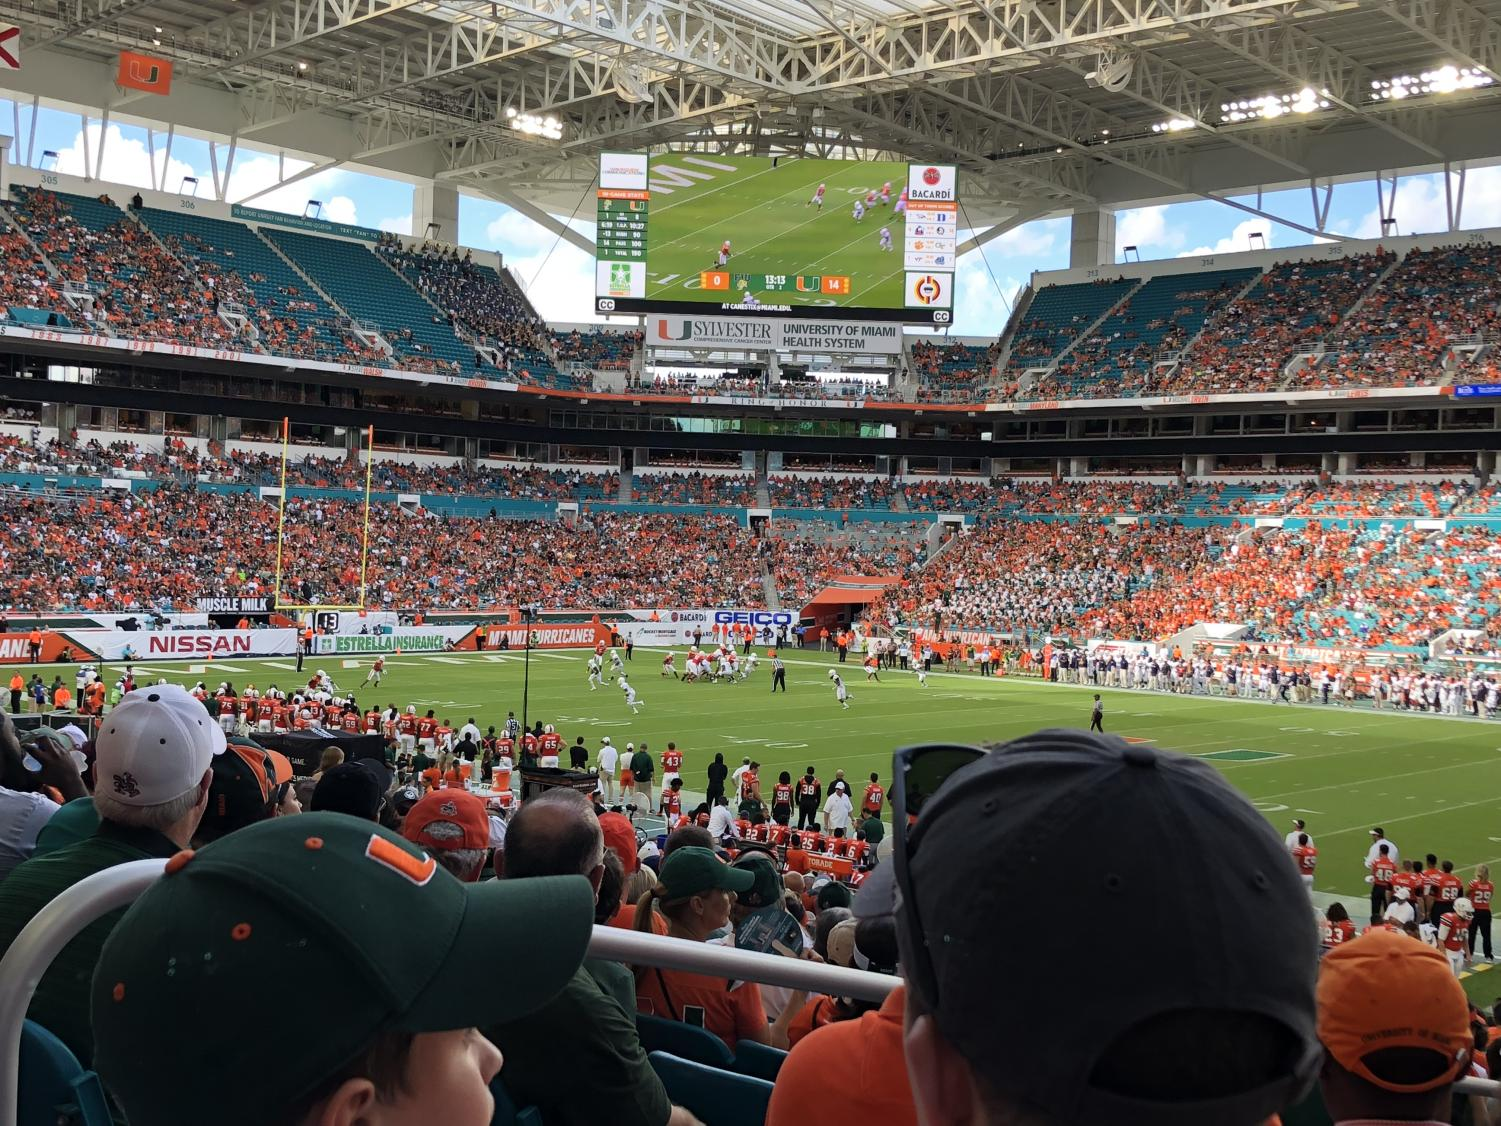 The Miami Hurricanes played the Golden Panthers at Hard Rock Stadium.